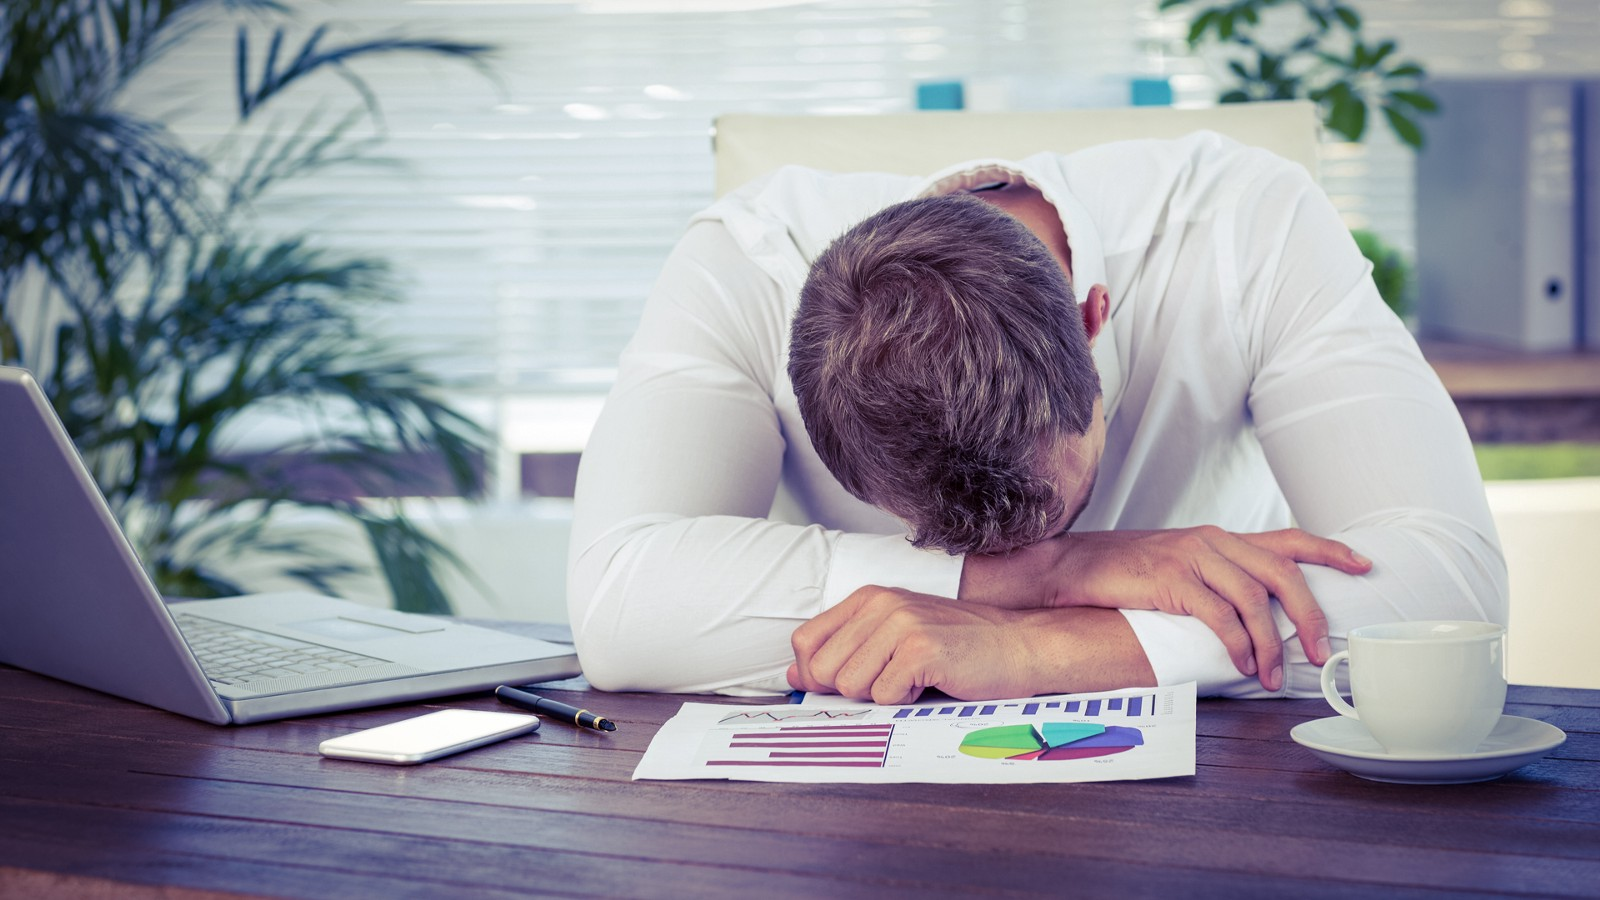 Blinded by data: 5 ways to deal with data overload